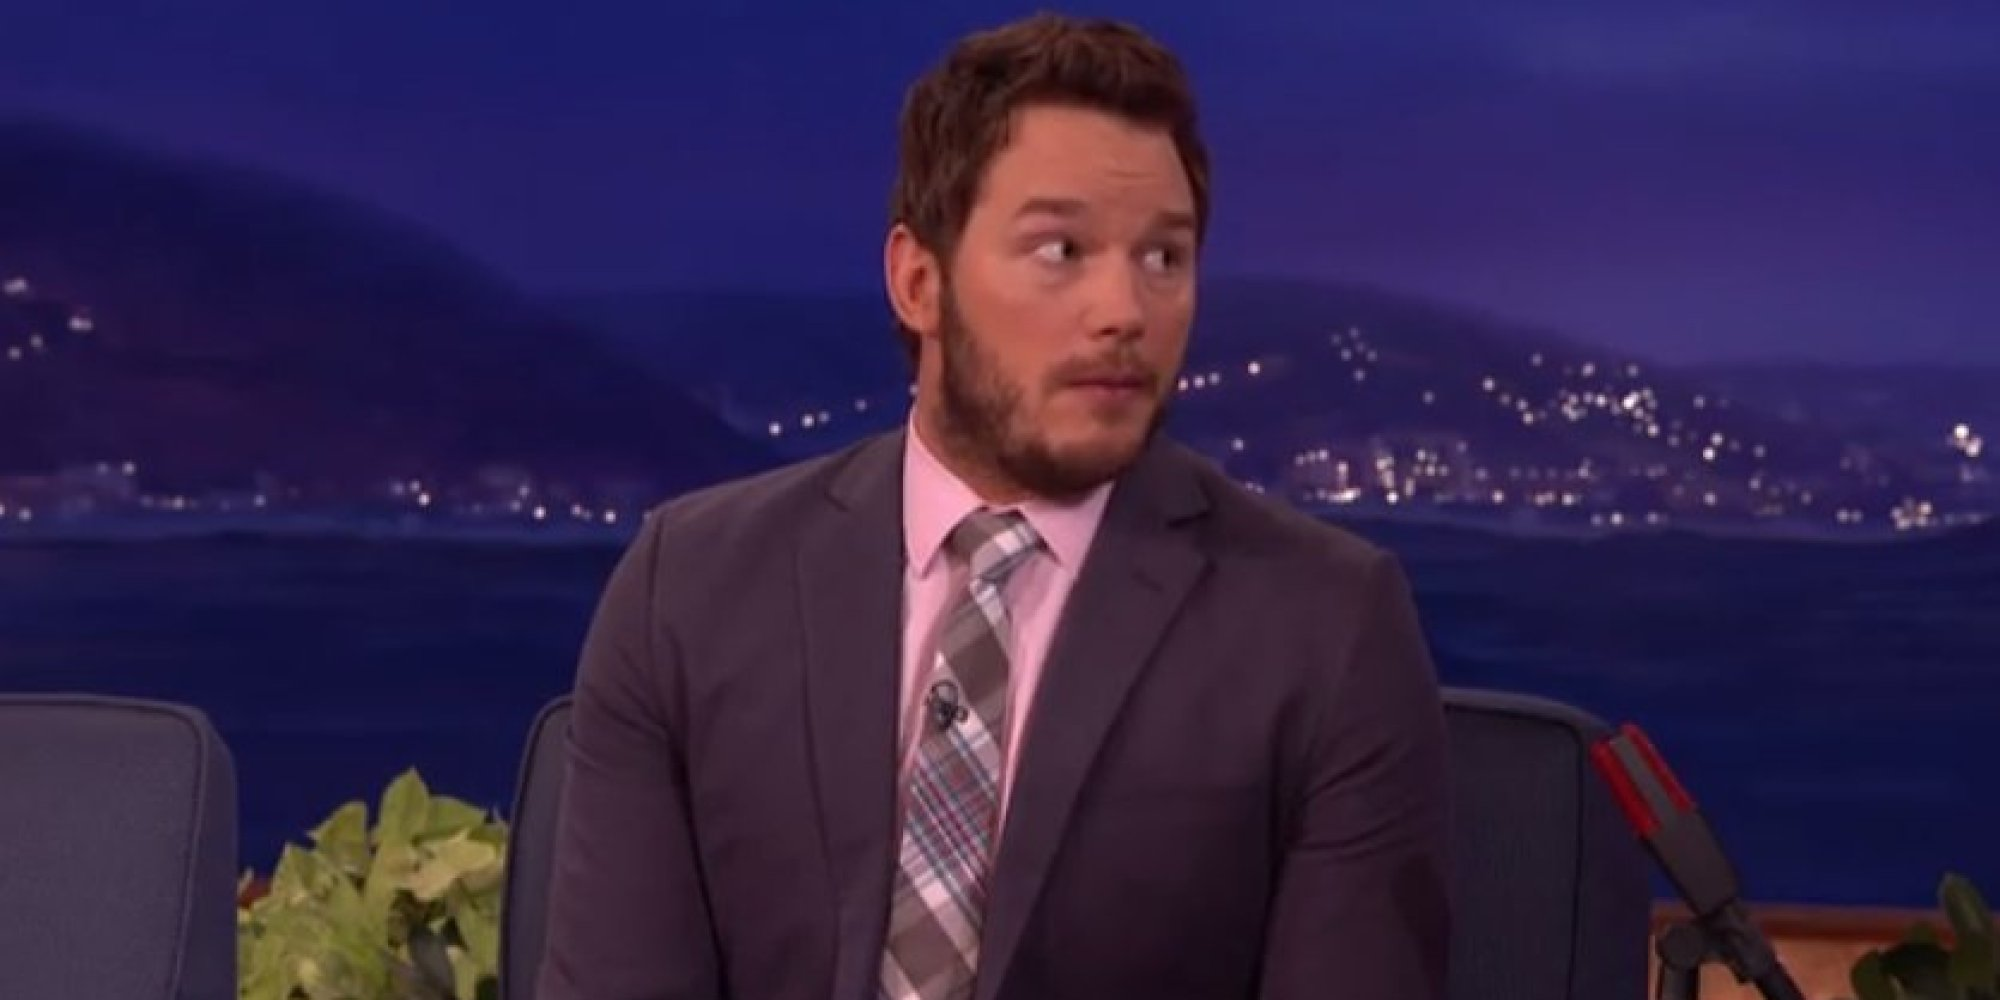 Andy Dwyer shock surprise gasp | GIFs | Andy dwyer, Chris ... |Small Face Photoshop Chris Pratt